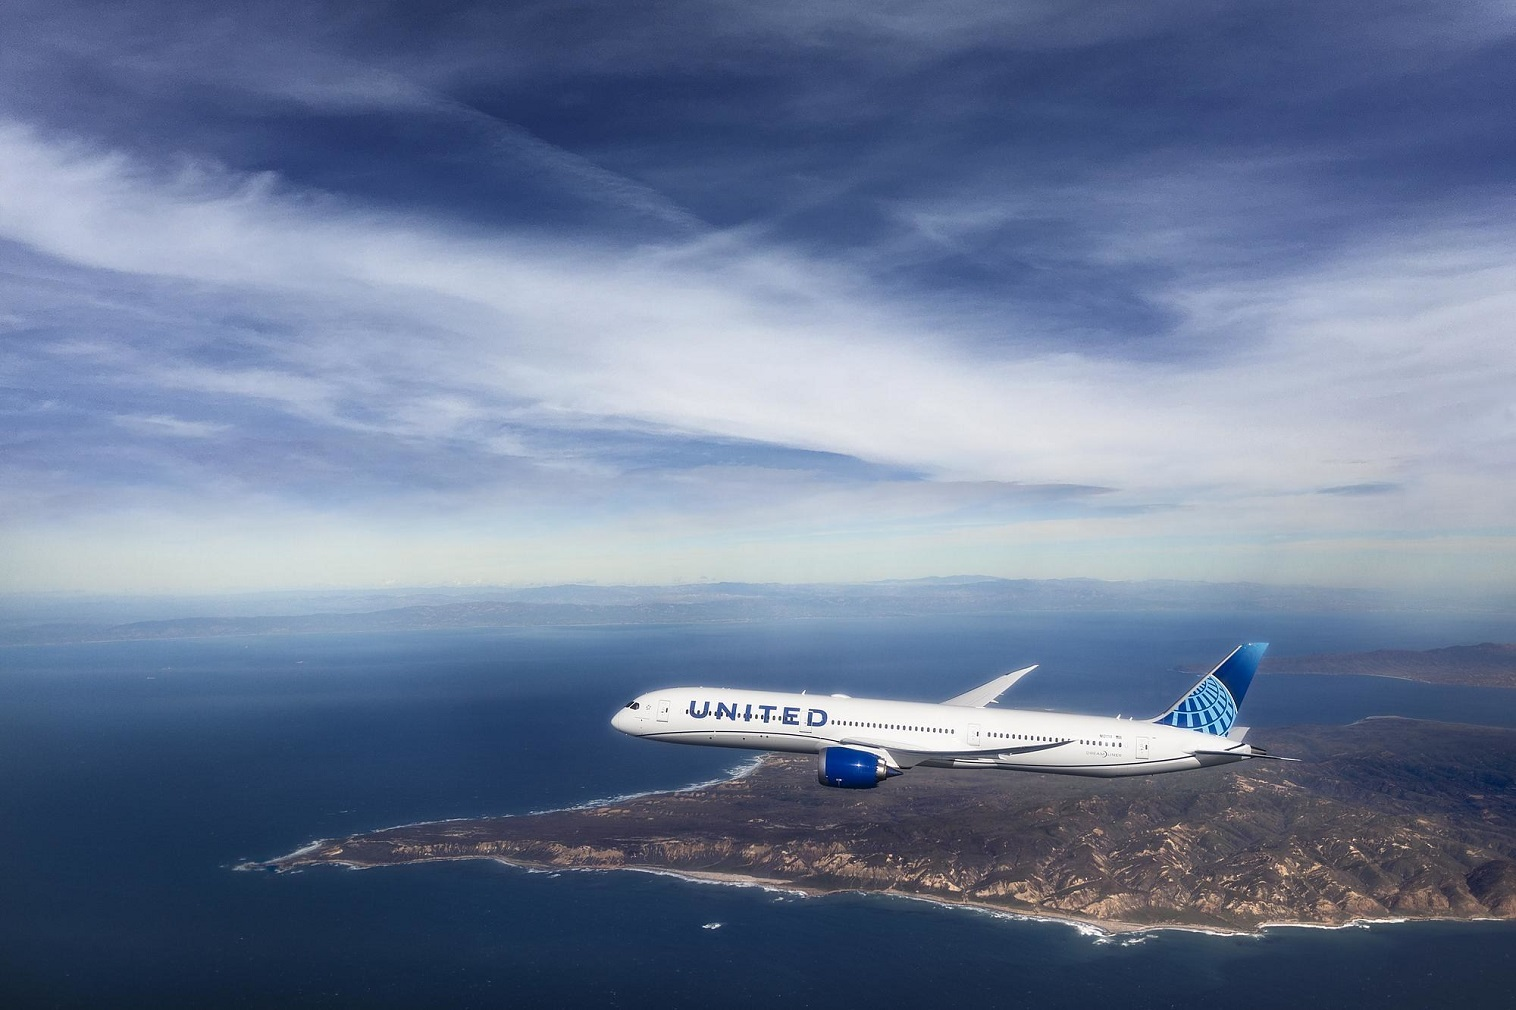 United today announced the largest transatlantic expansion in its history, including 10 new flights and five new, vogue destinations – Amman, Jordan; Bergen, Norway; Azores, Portugal; Palma de Mallorca, Spain and Tenerife in the Spanish Canary Islands.